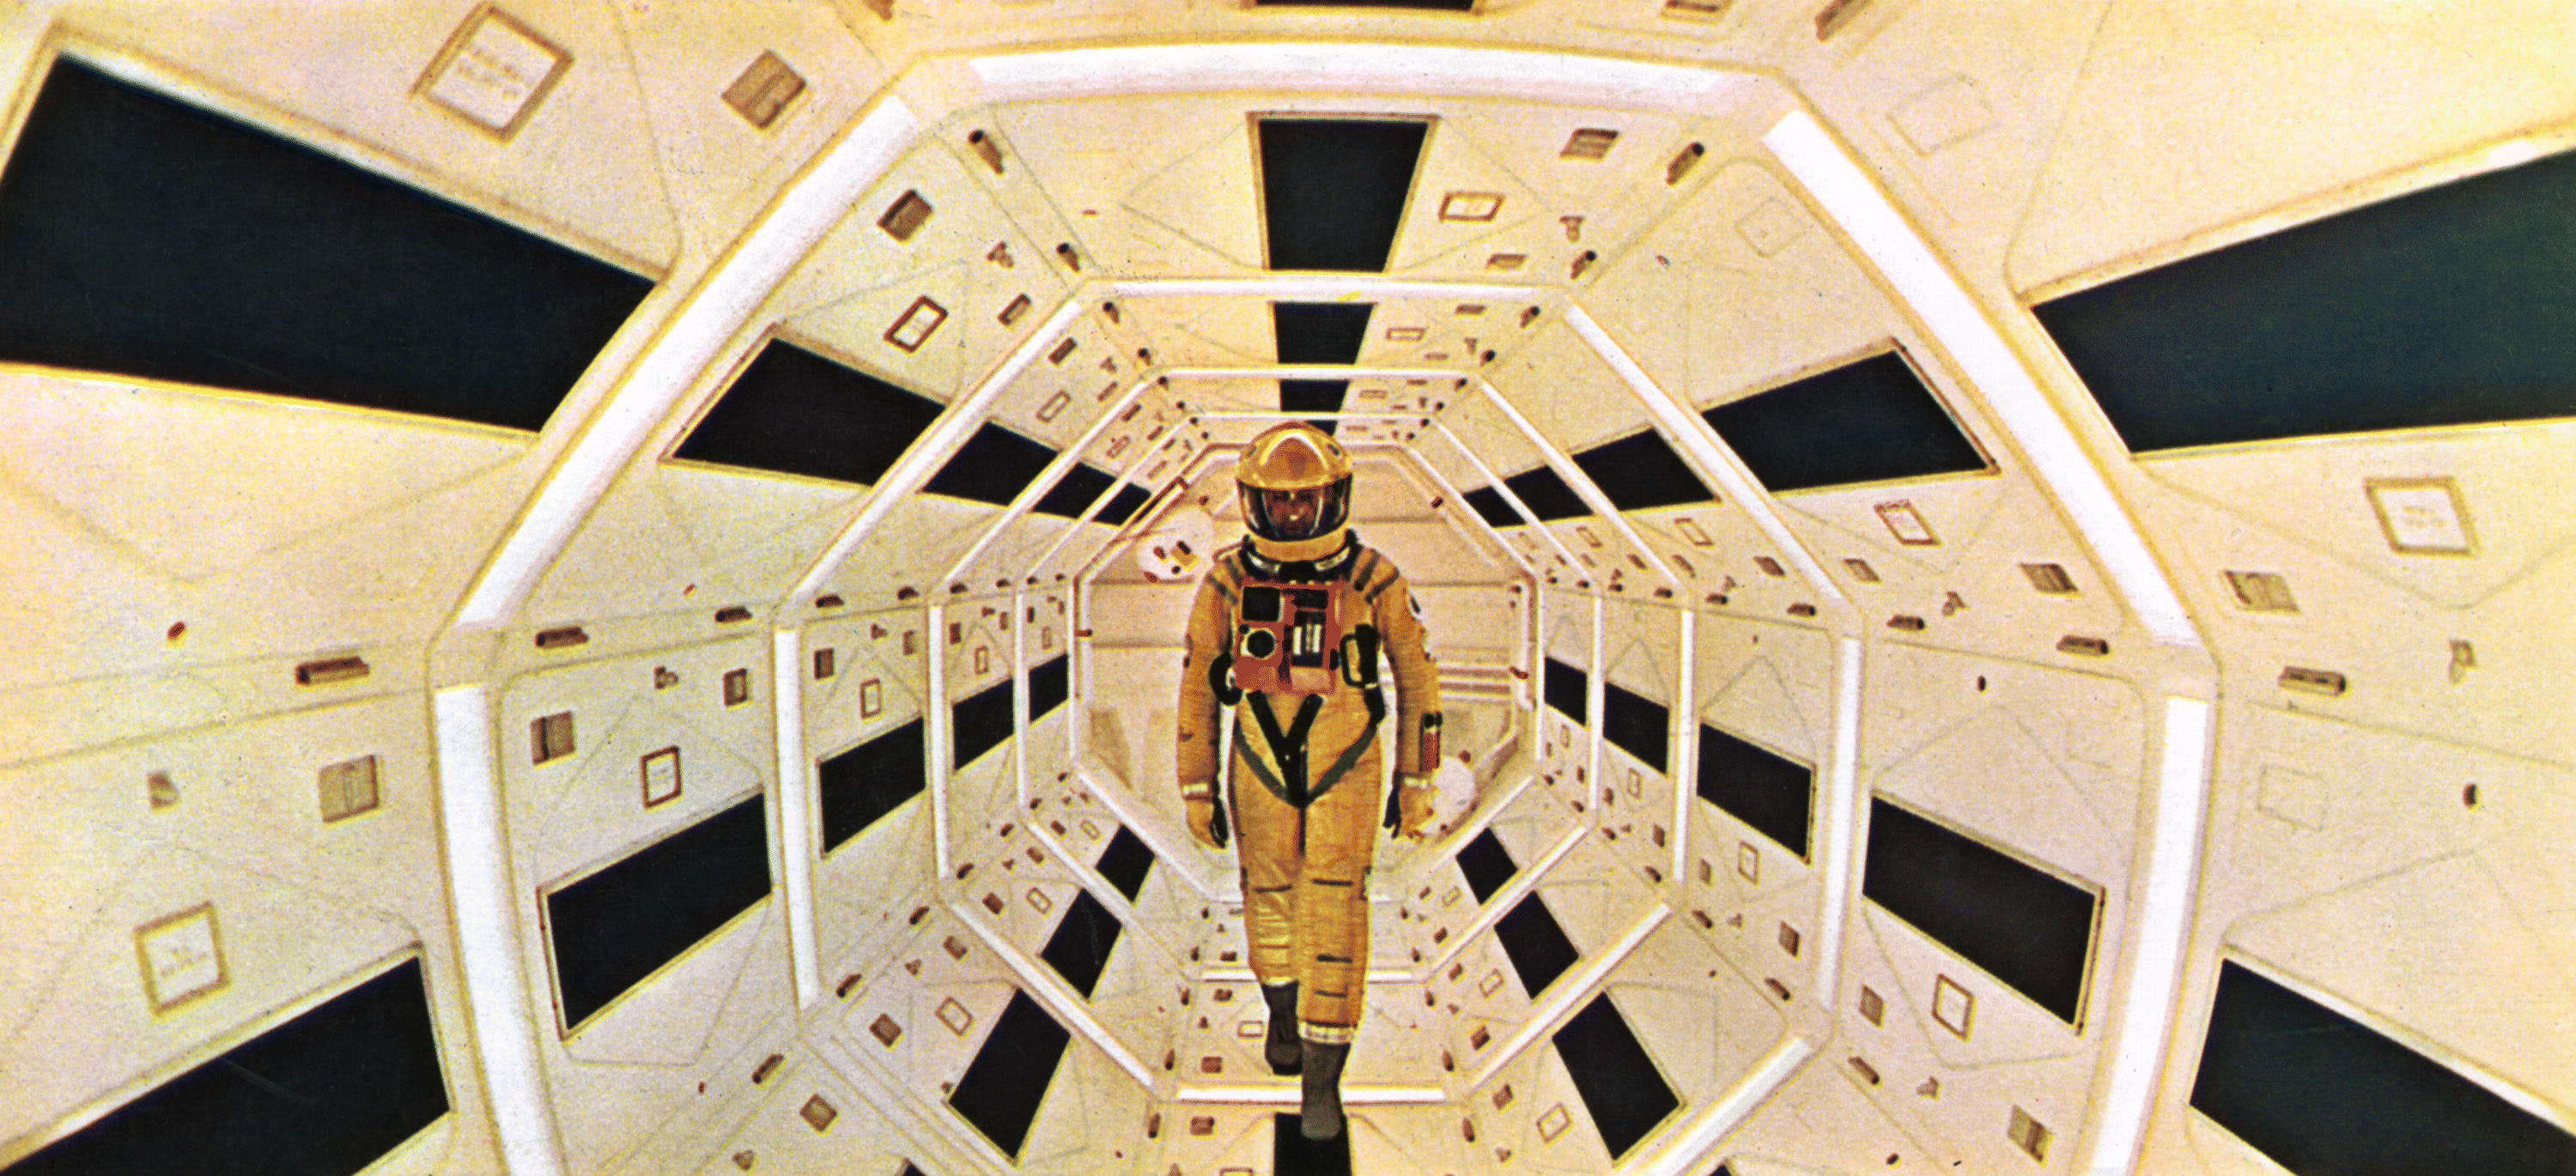 Aboard The Discovery in 2001: A Space Odyssey (1968)